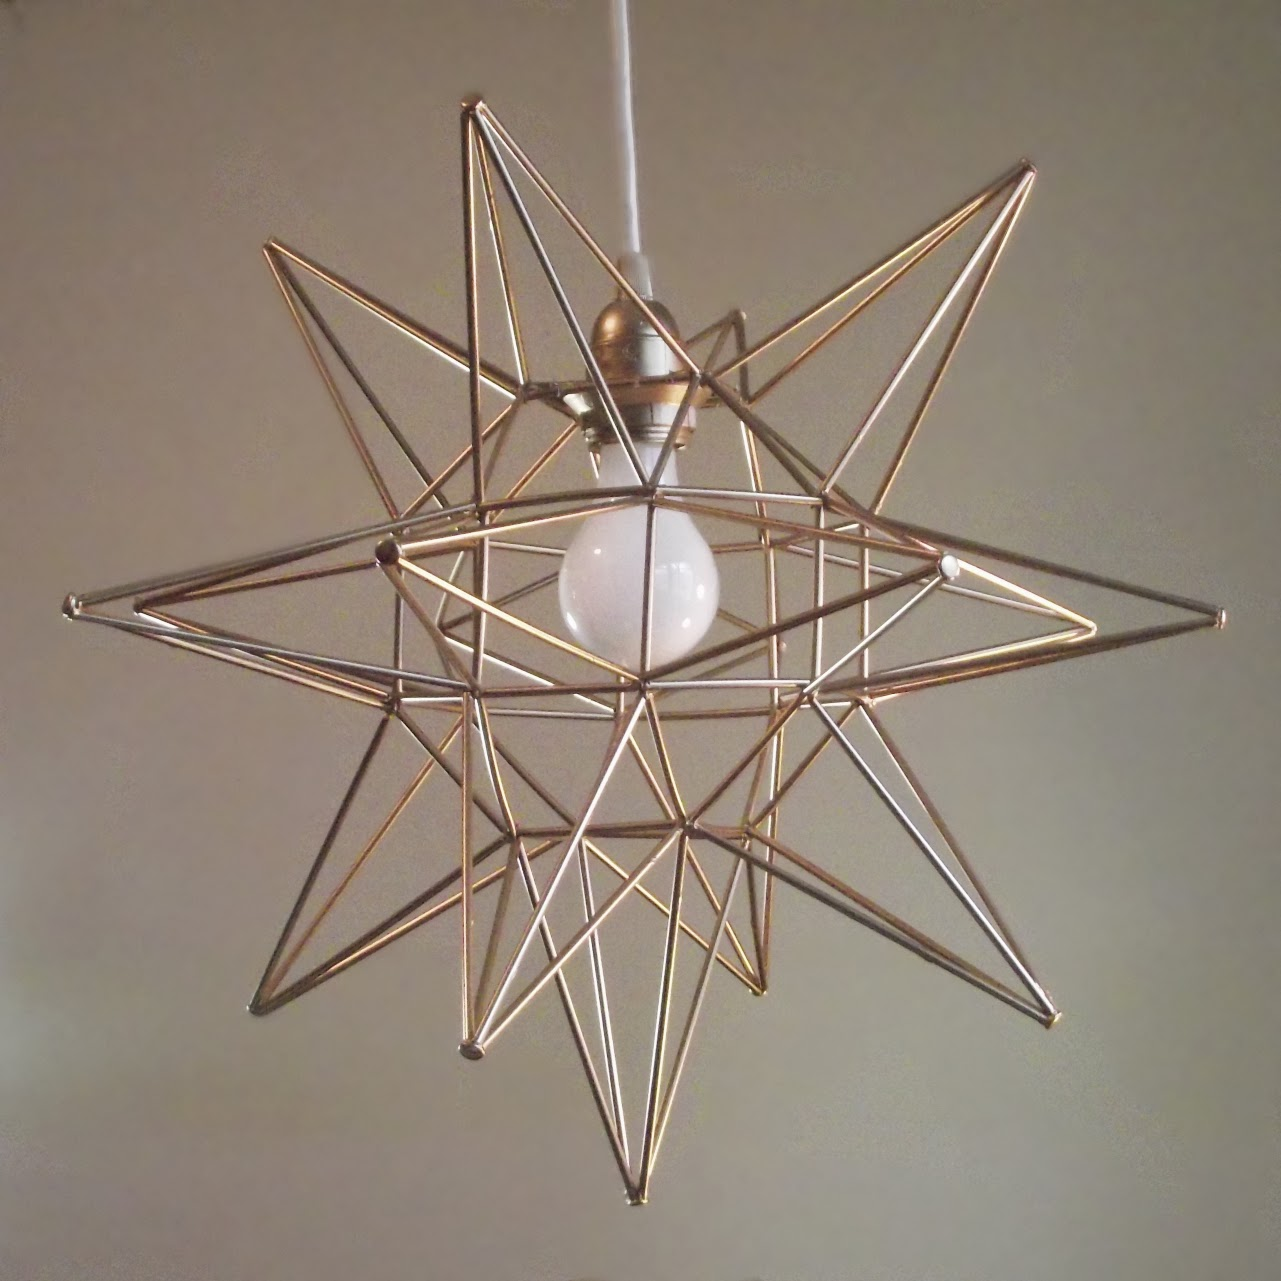 diy geometric moravian star pendant light oof that 39 s a mouth full. Black Bedroom Furniture Sets. Home Design Ideas